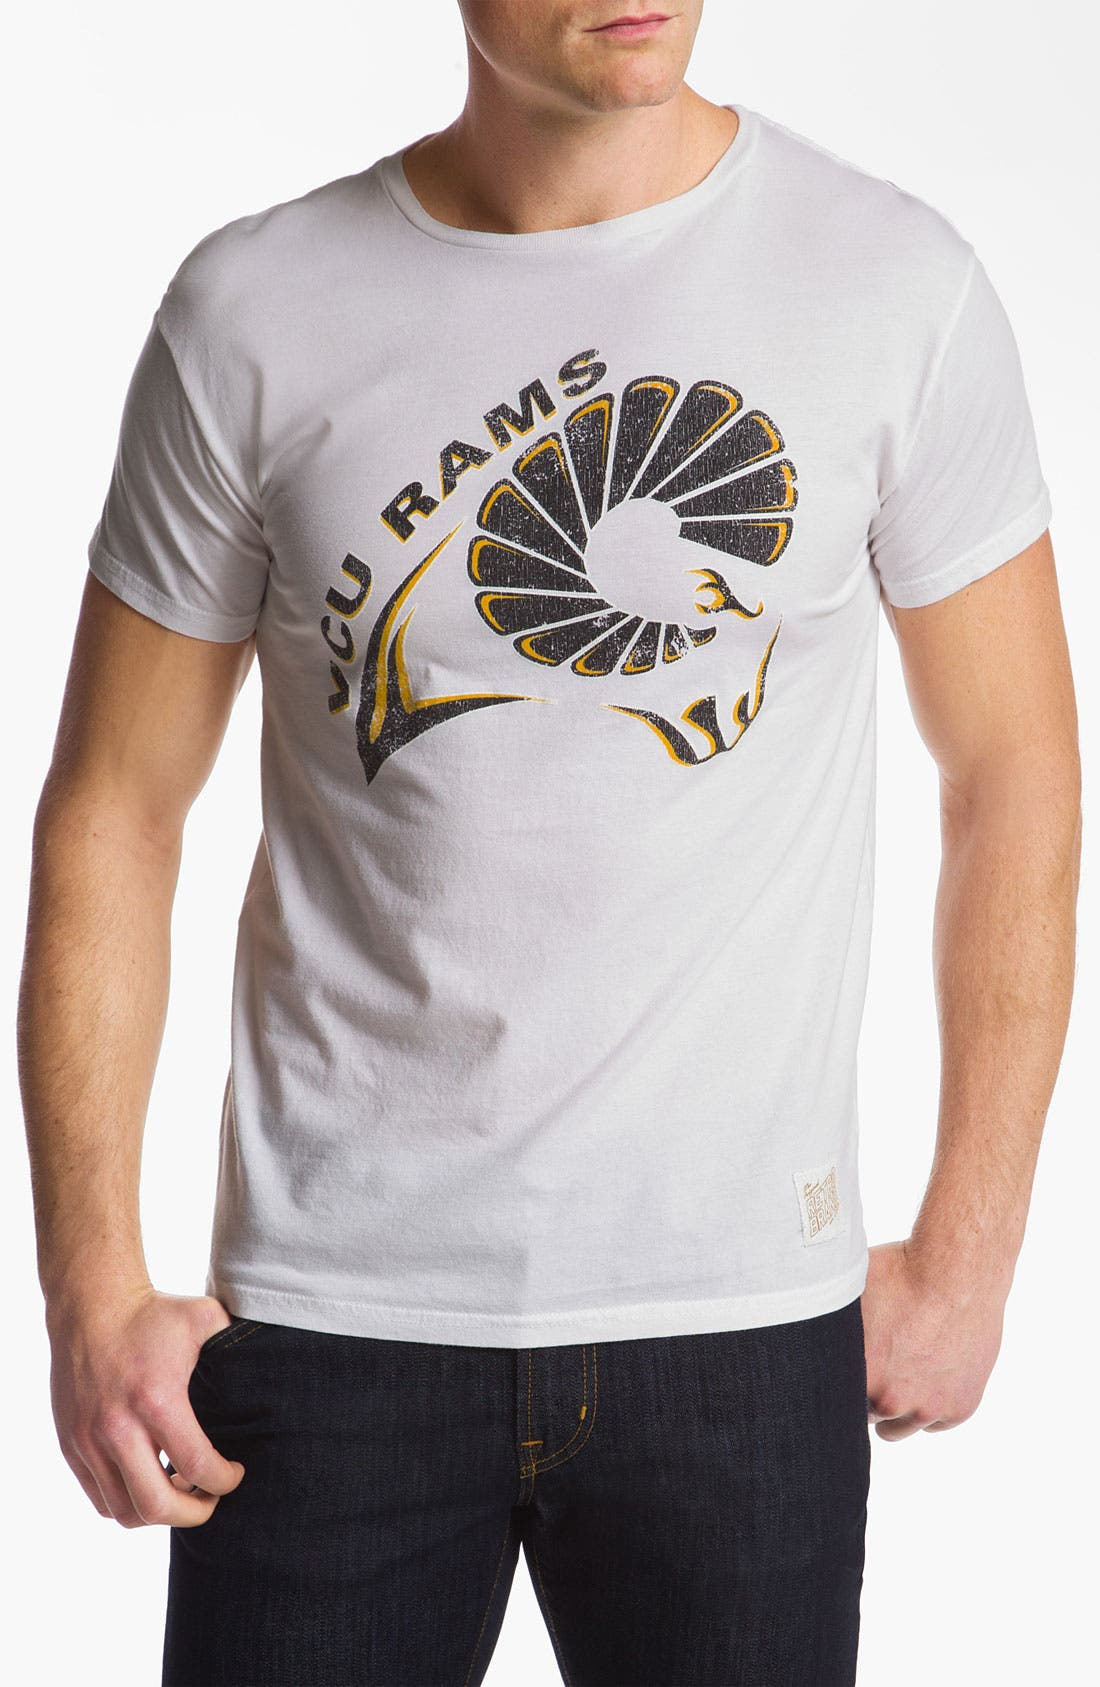 Alternate Image 1 Selected - The Original Retro Brand 'Virginia Commonwealth Rams' T-Shirt